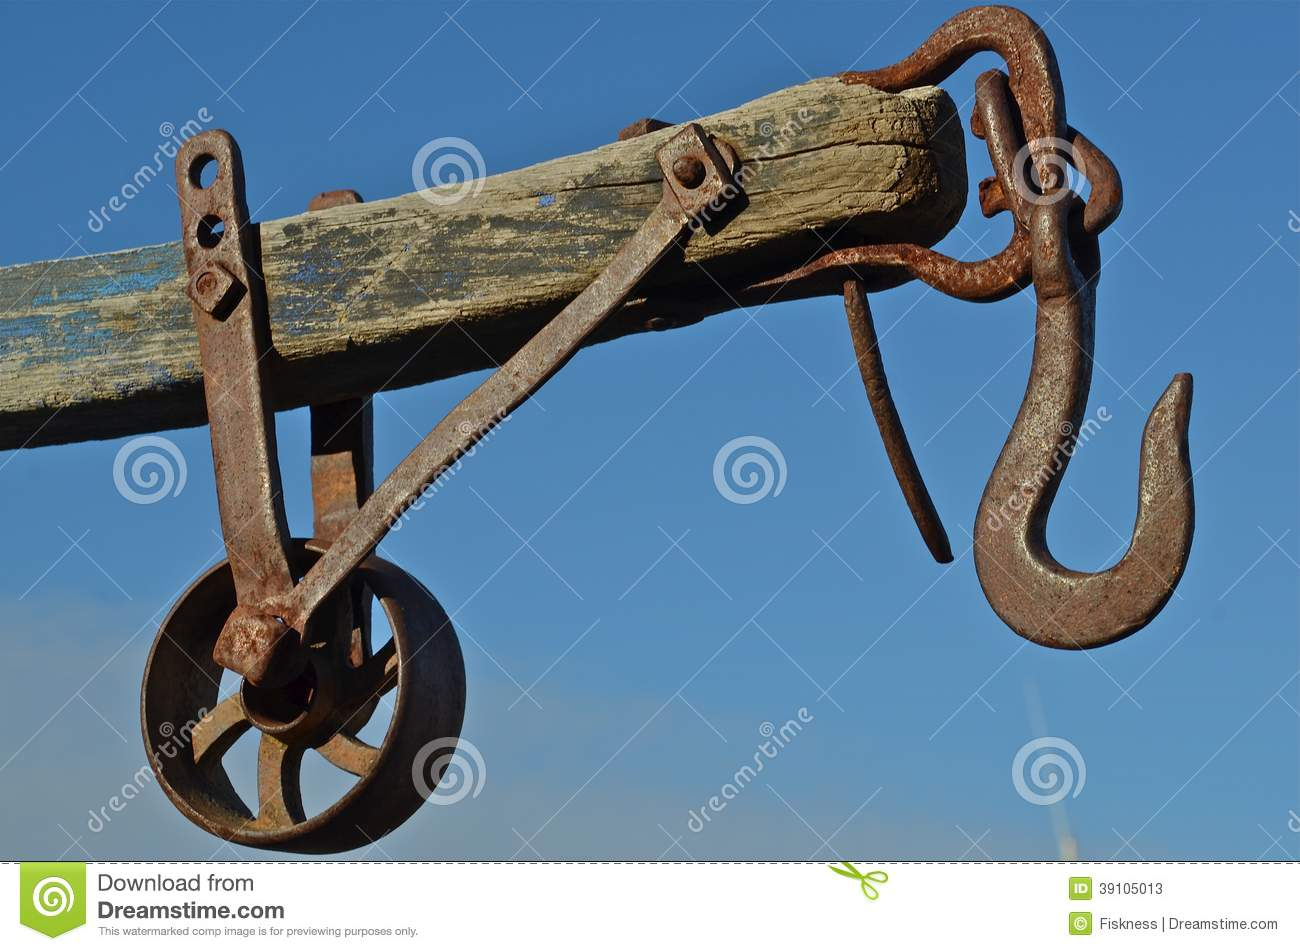 Arm, Pulley, And Wheel Of A Winch System Stock Image - Image